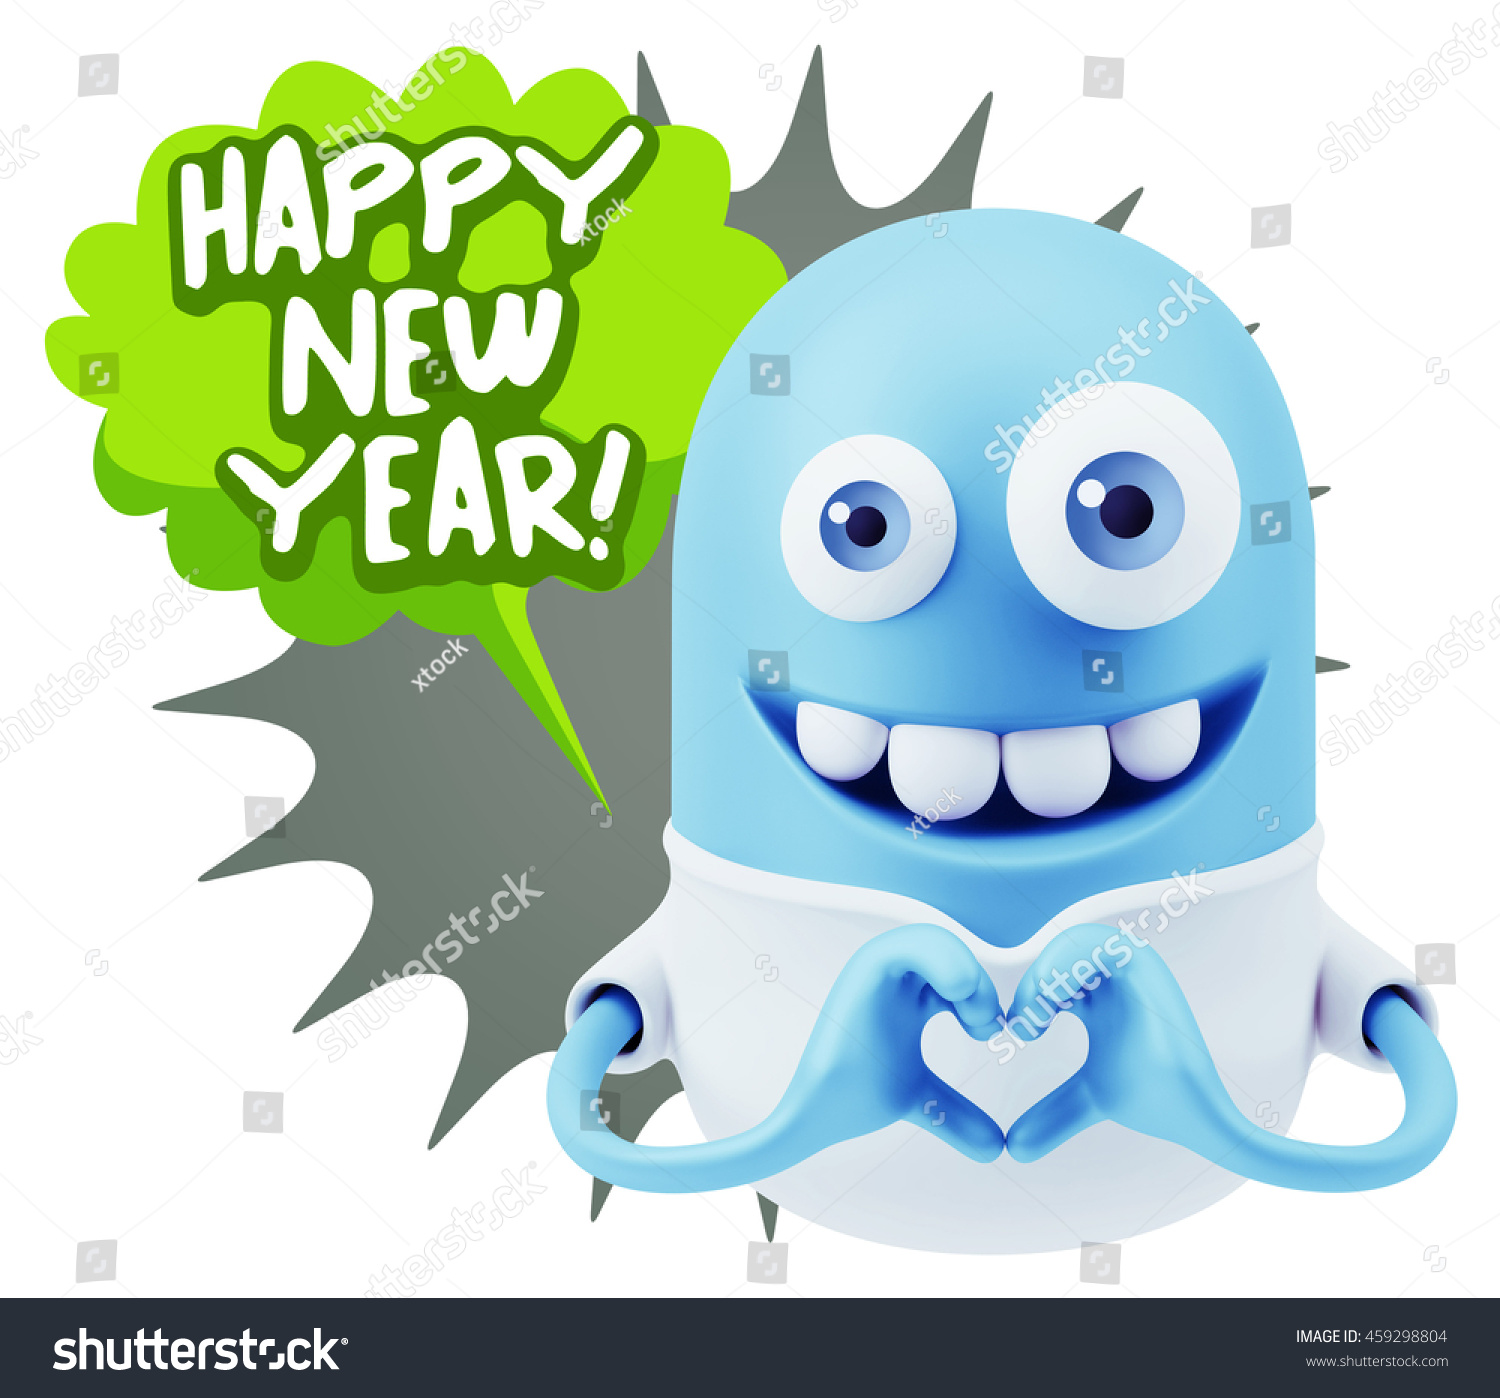 emoticon saying happy new year with colorful speech bubble